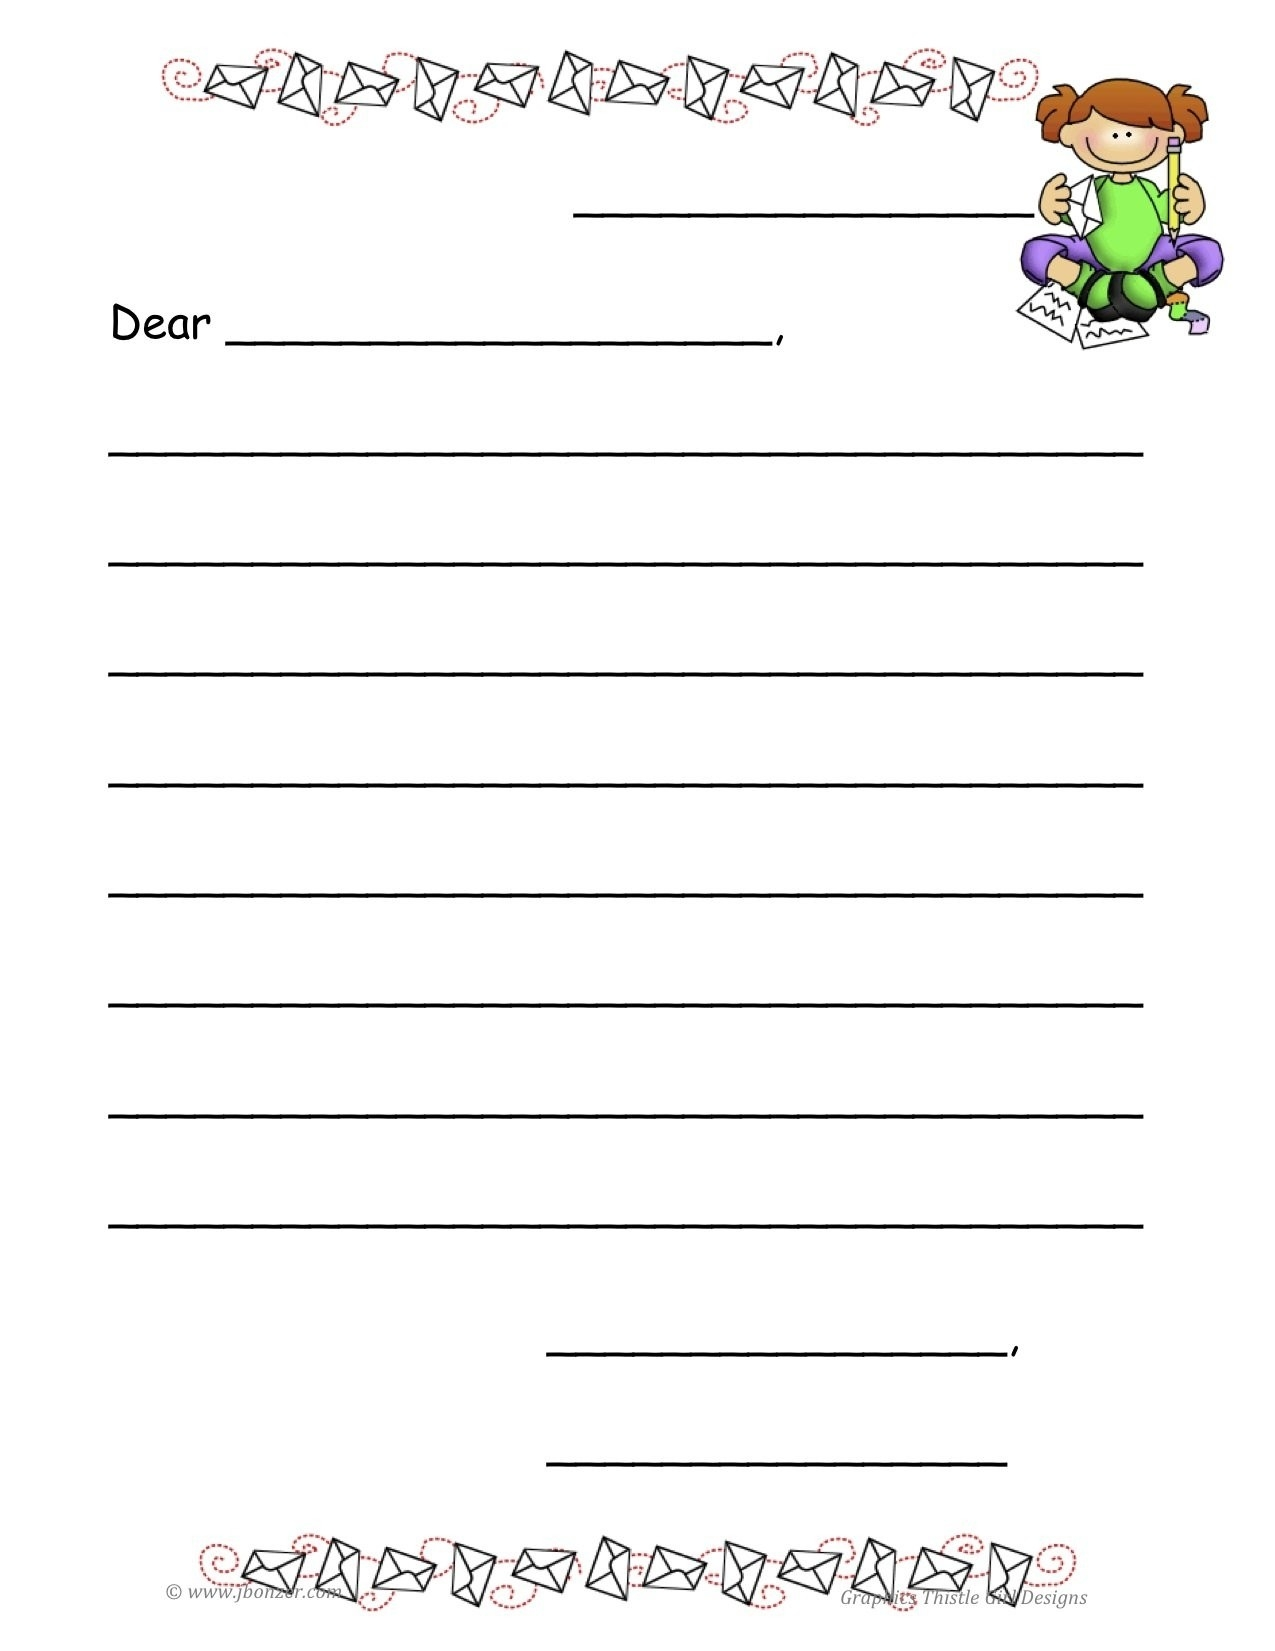 Personal Letter Template For Kids | Template Idea intended for Personal Letter Format For Kids 20158